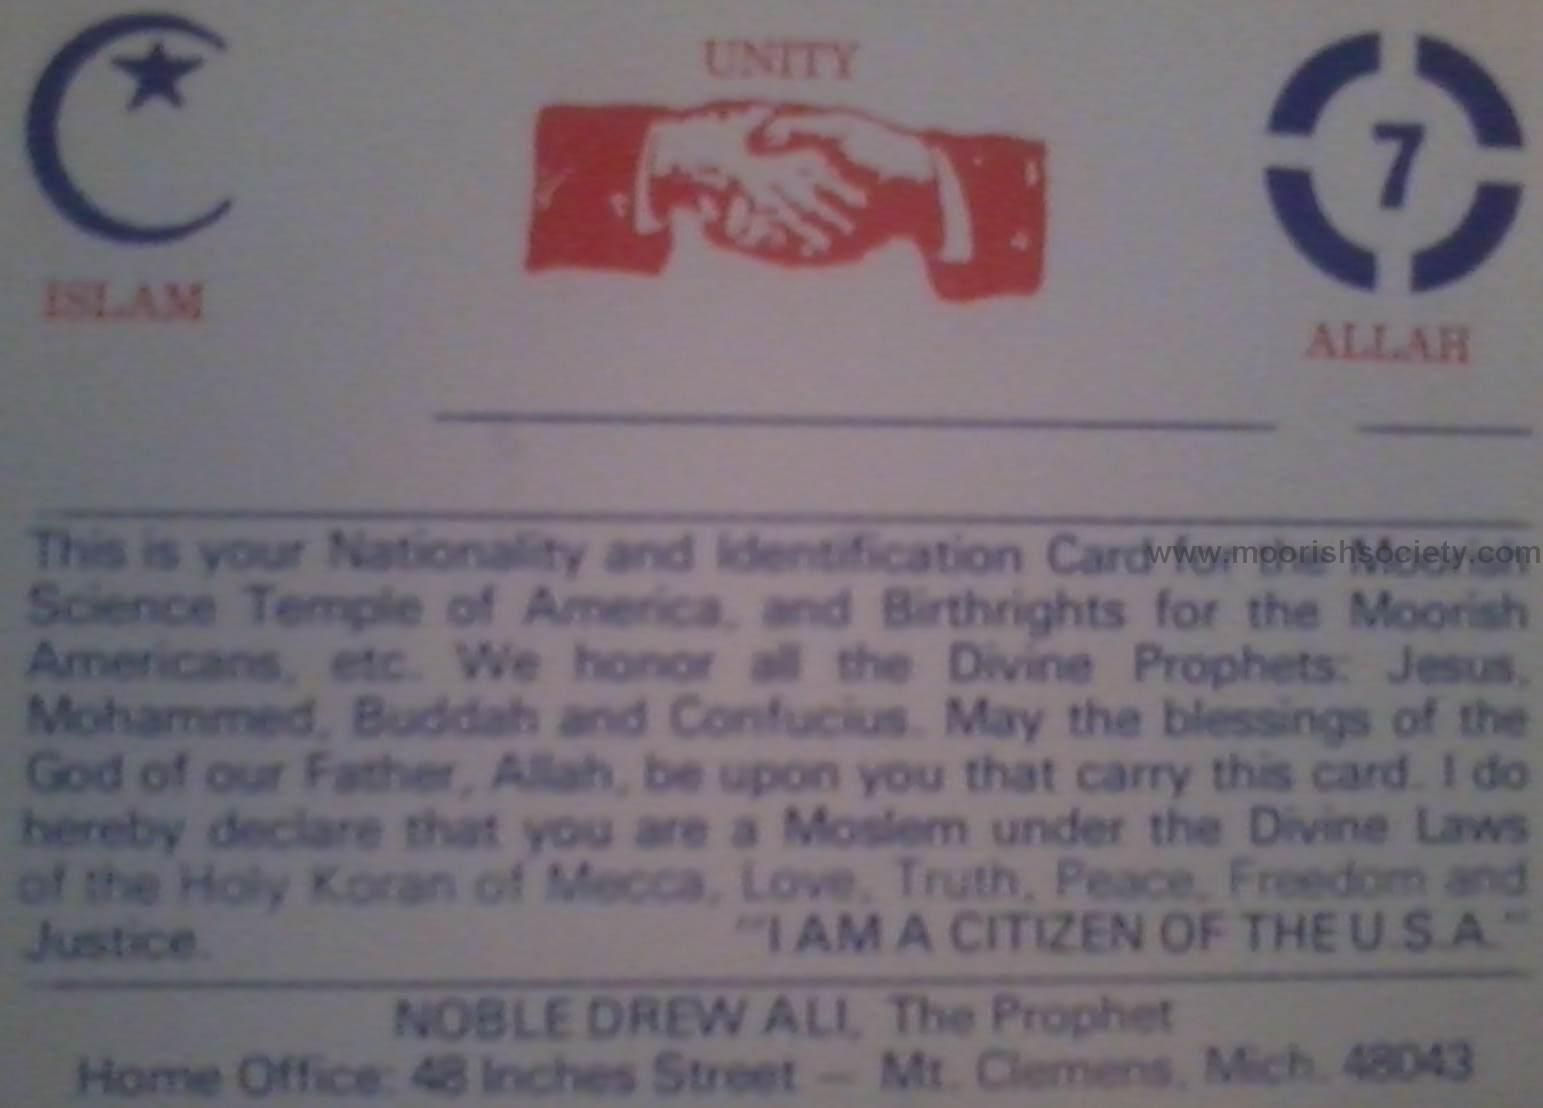 This is the Nationality Card for members of the Moorish